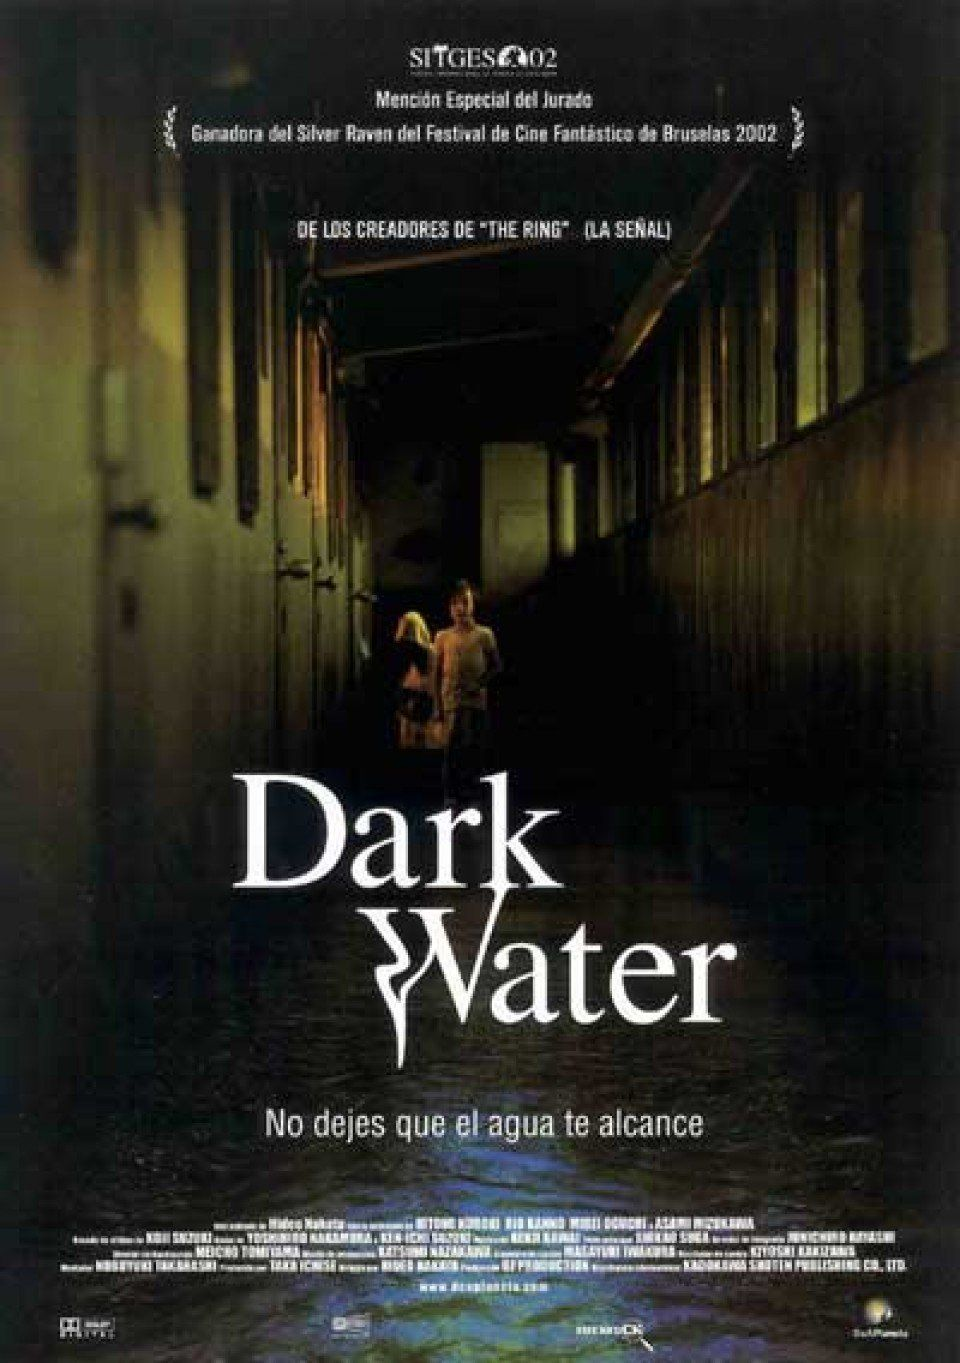 Dark Water (2002) Movie | New Horror Movies and Horror Top